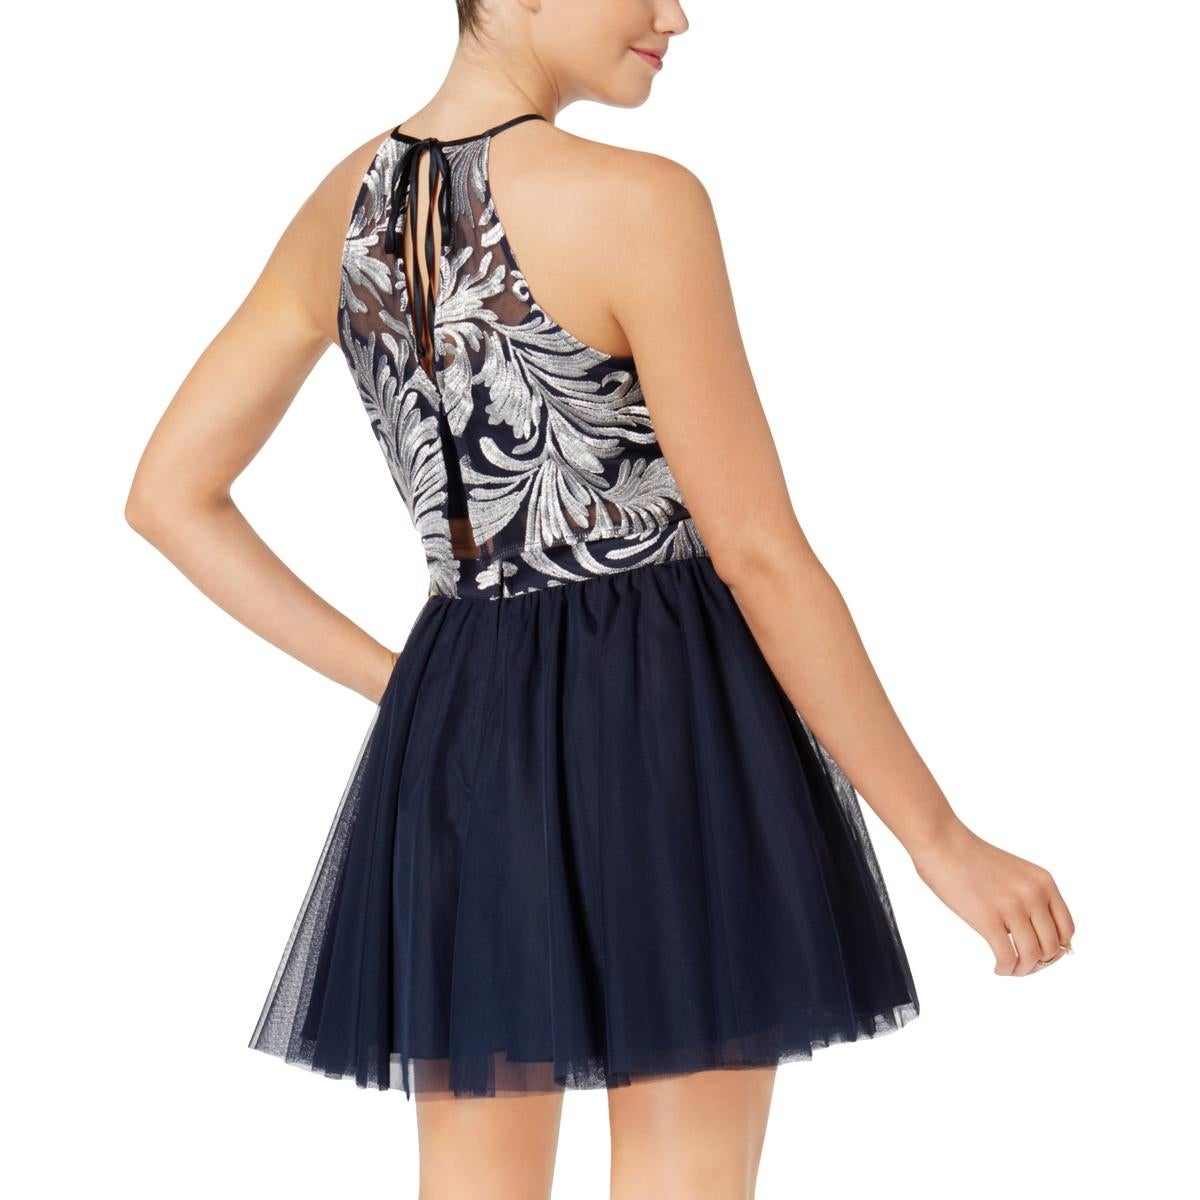 f235e067a18 Shop Teeze Me Womens Juniors Semi-Formal Dress Metallic Halter - 13 14 - On  Sale - Free Shipping On Orders Over  45 - Overstock - 27432745